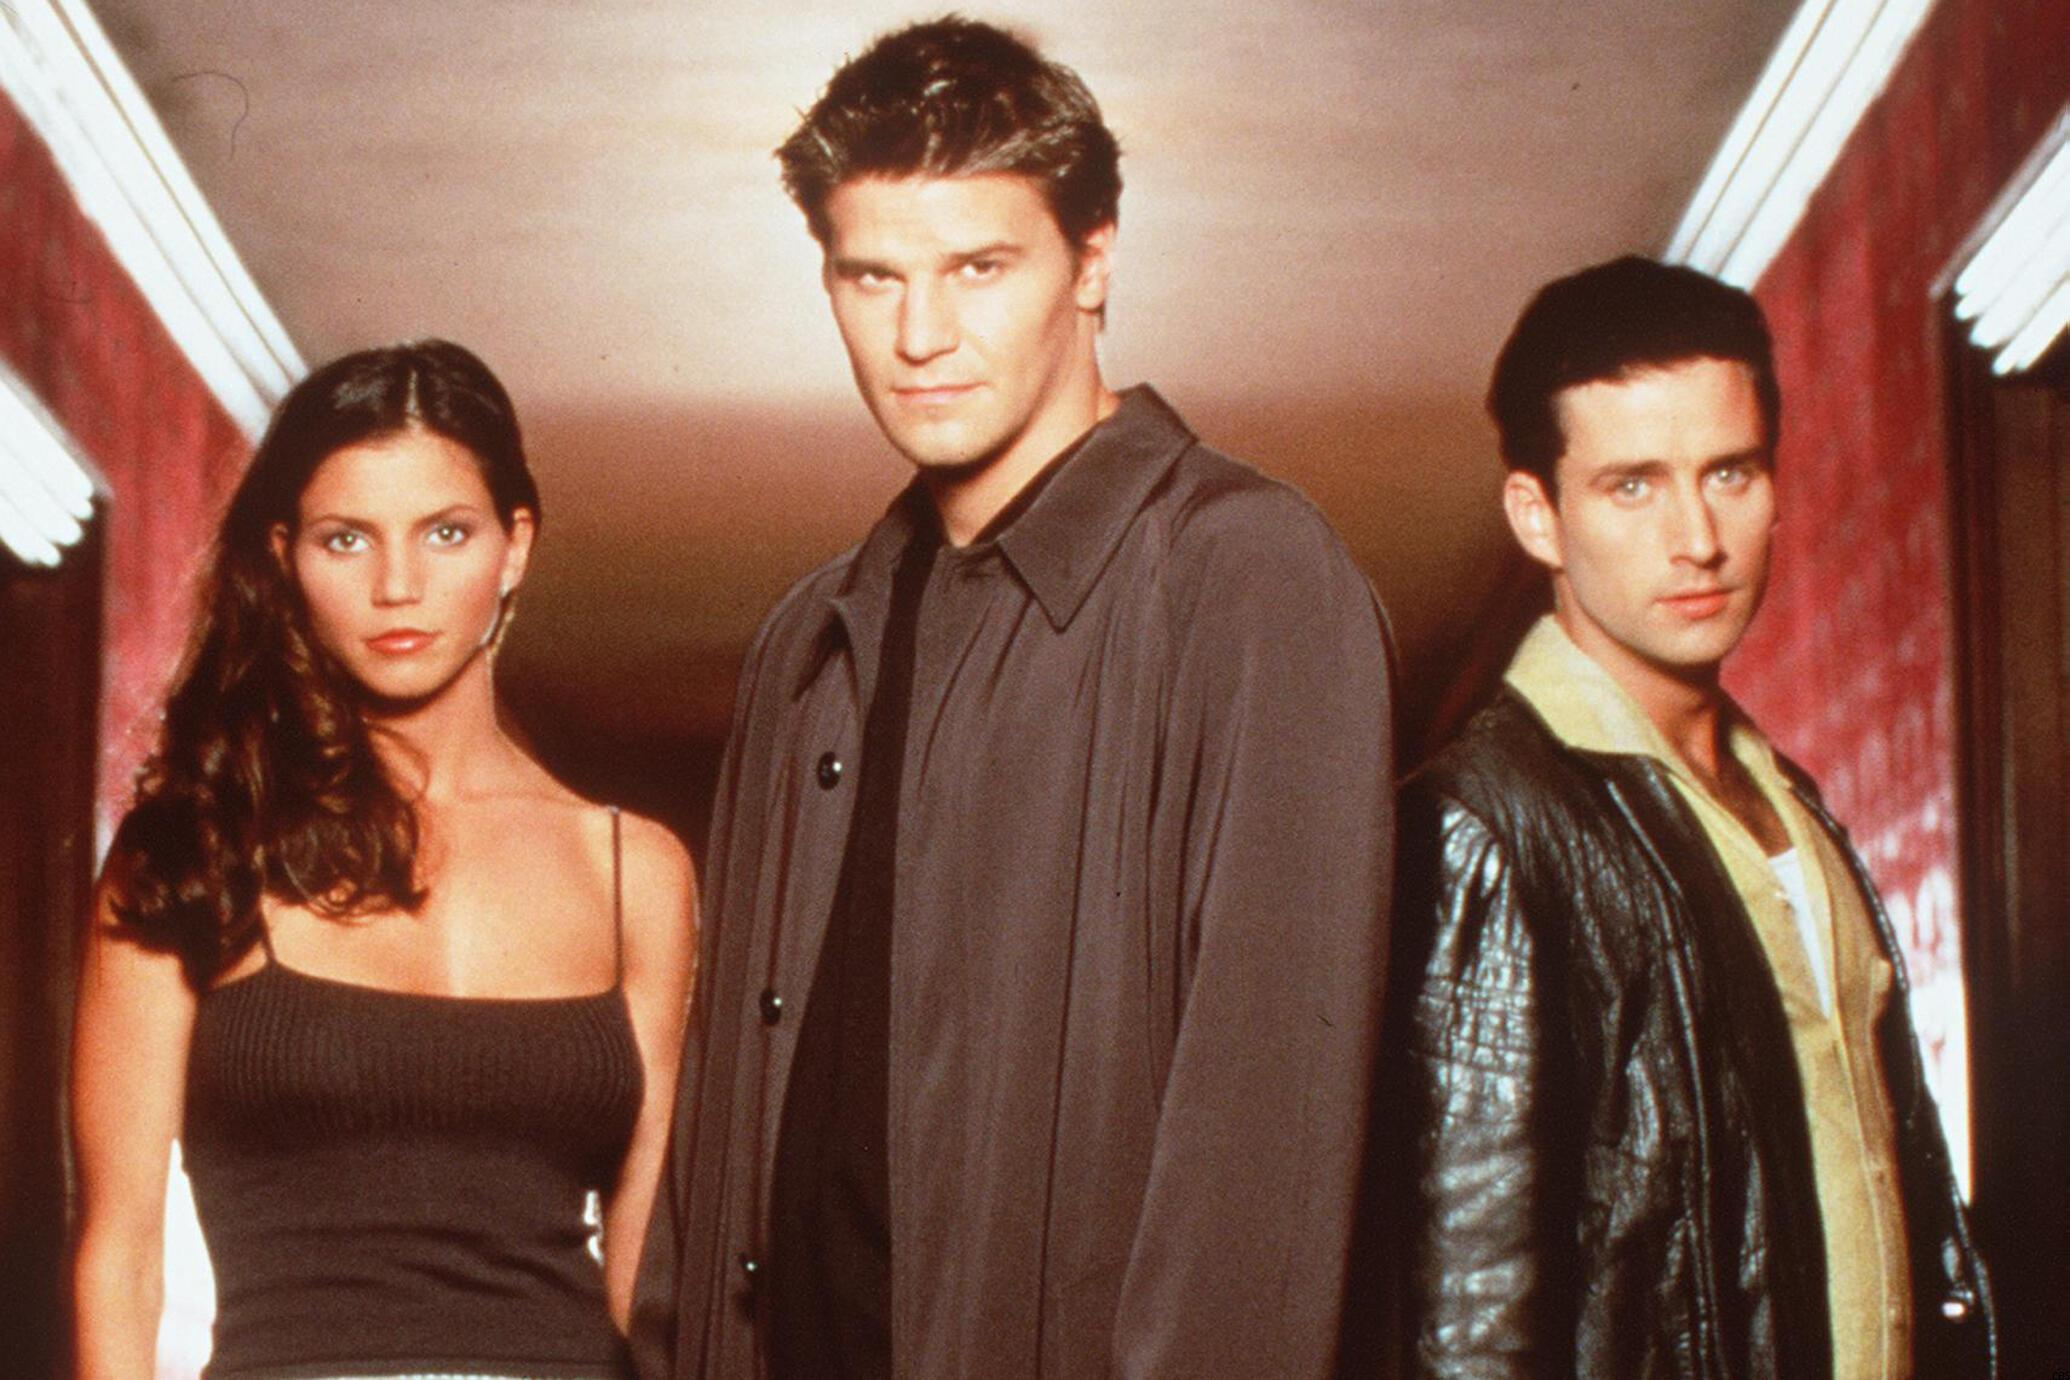 Charisma Carpenter David Boreanaz And Glenn Quinn Star In The Tv Show Angel